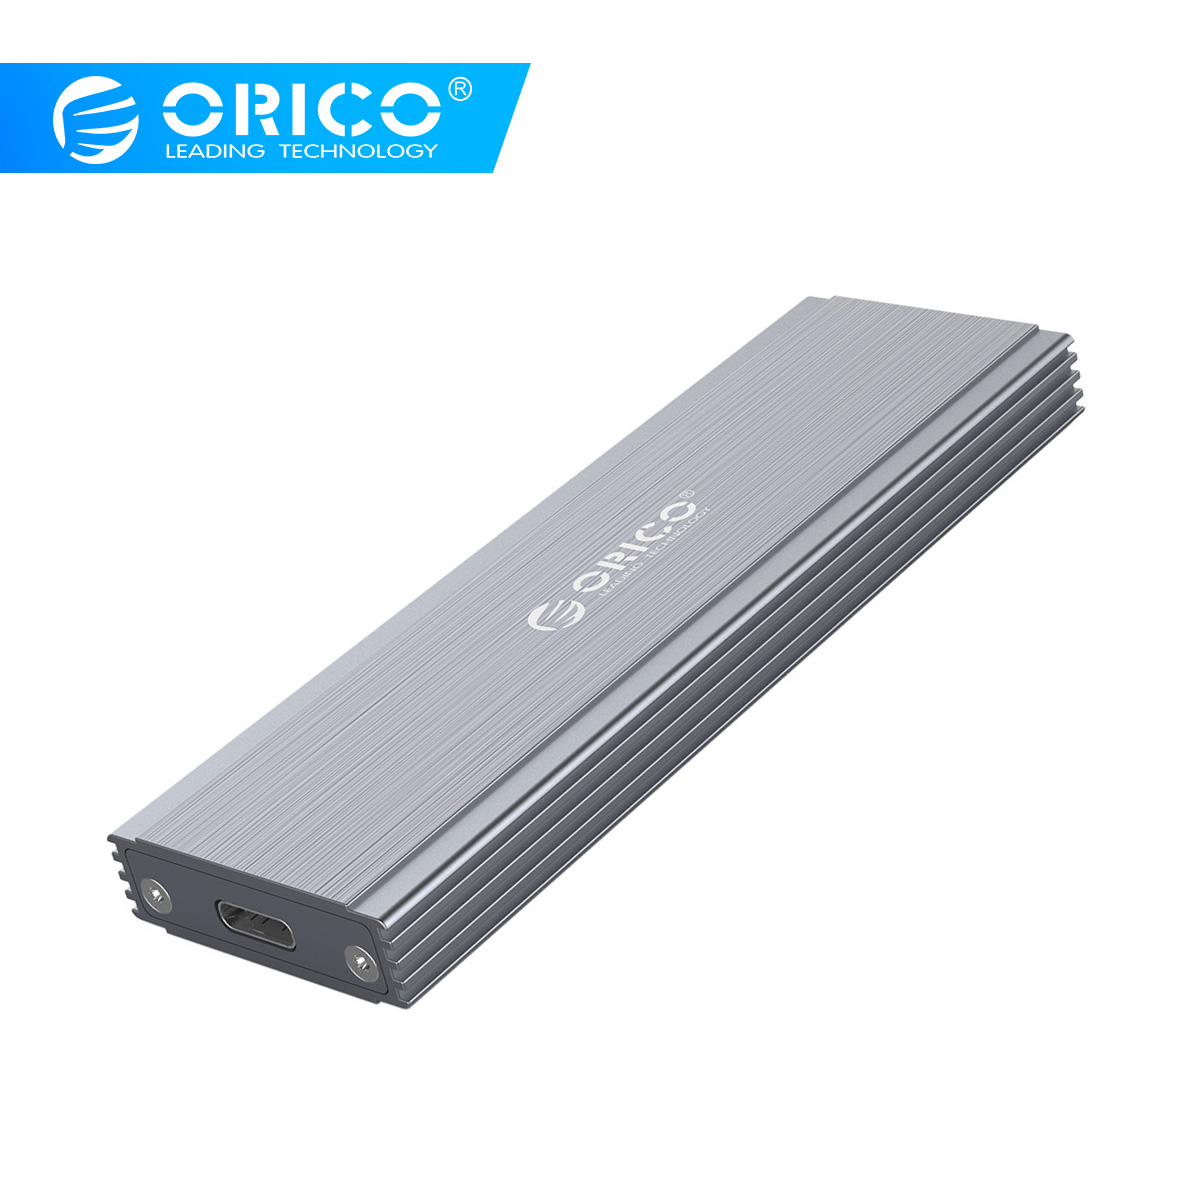 ORICO NGFF M.2 SSD Enclosure M2 SSD Case USB3.1 Type-C 5Gbps Support 2TB Capacity SSD Case For Windows/Mac/Linux